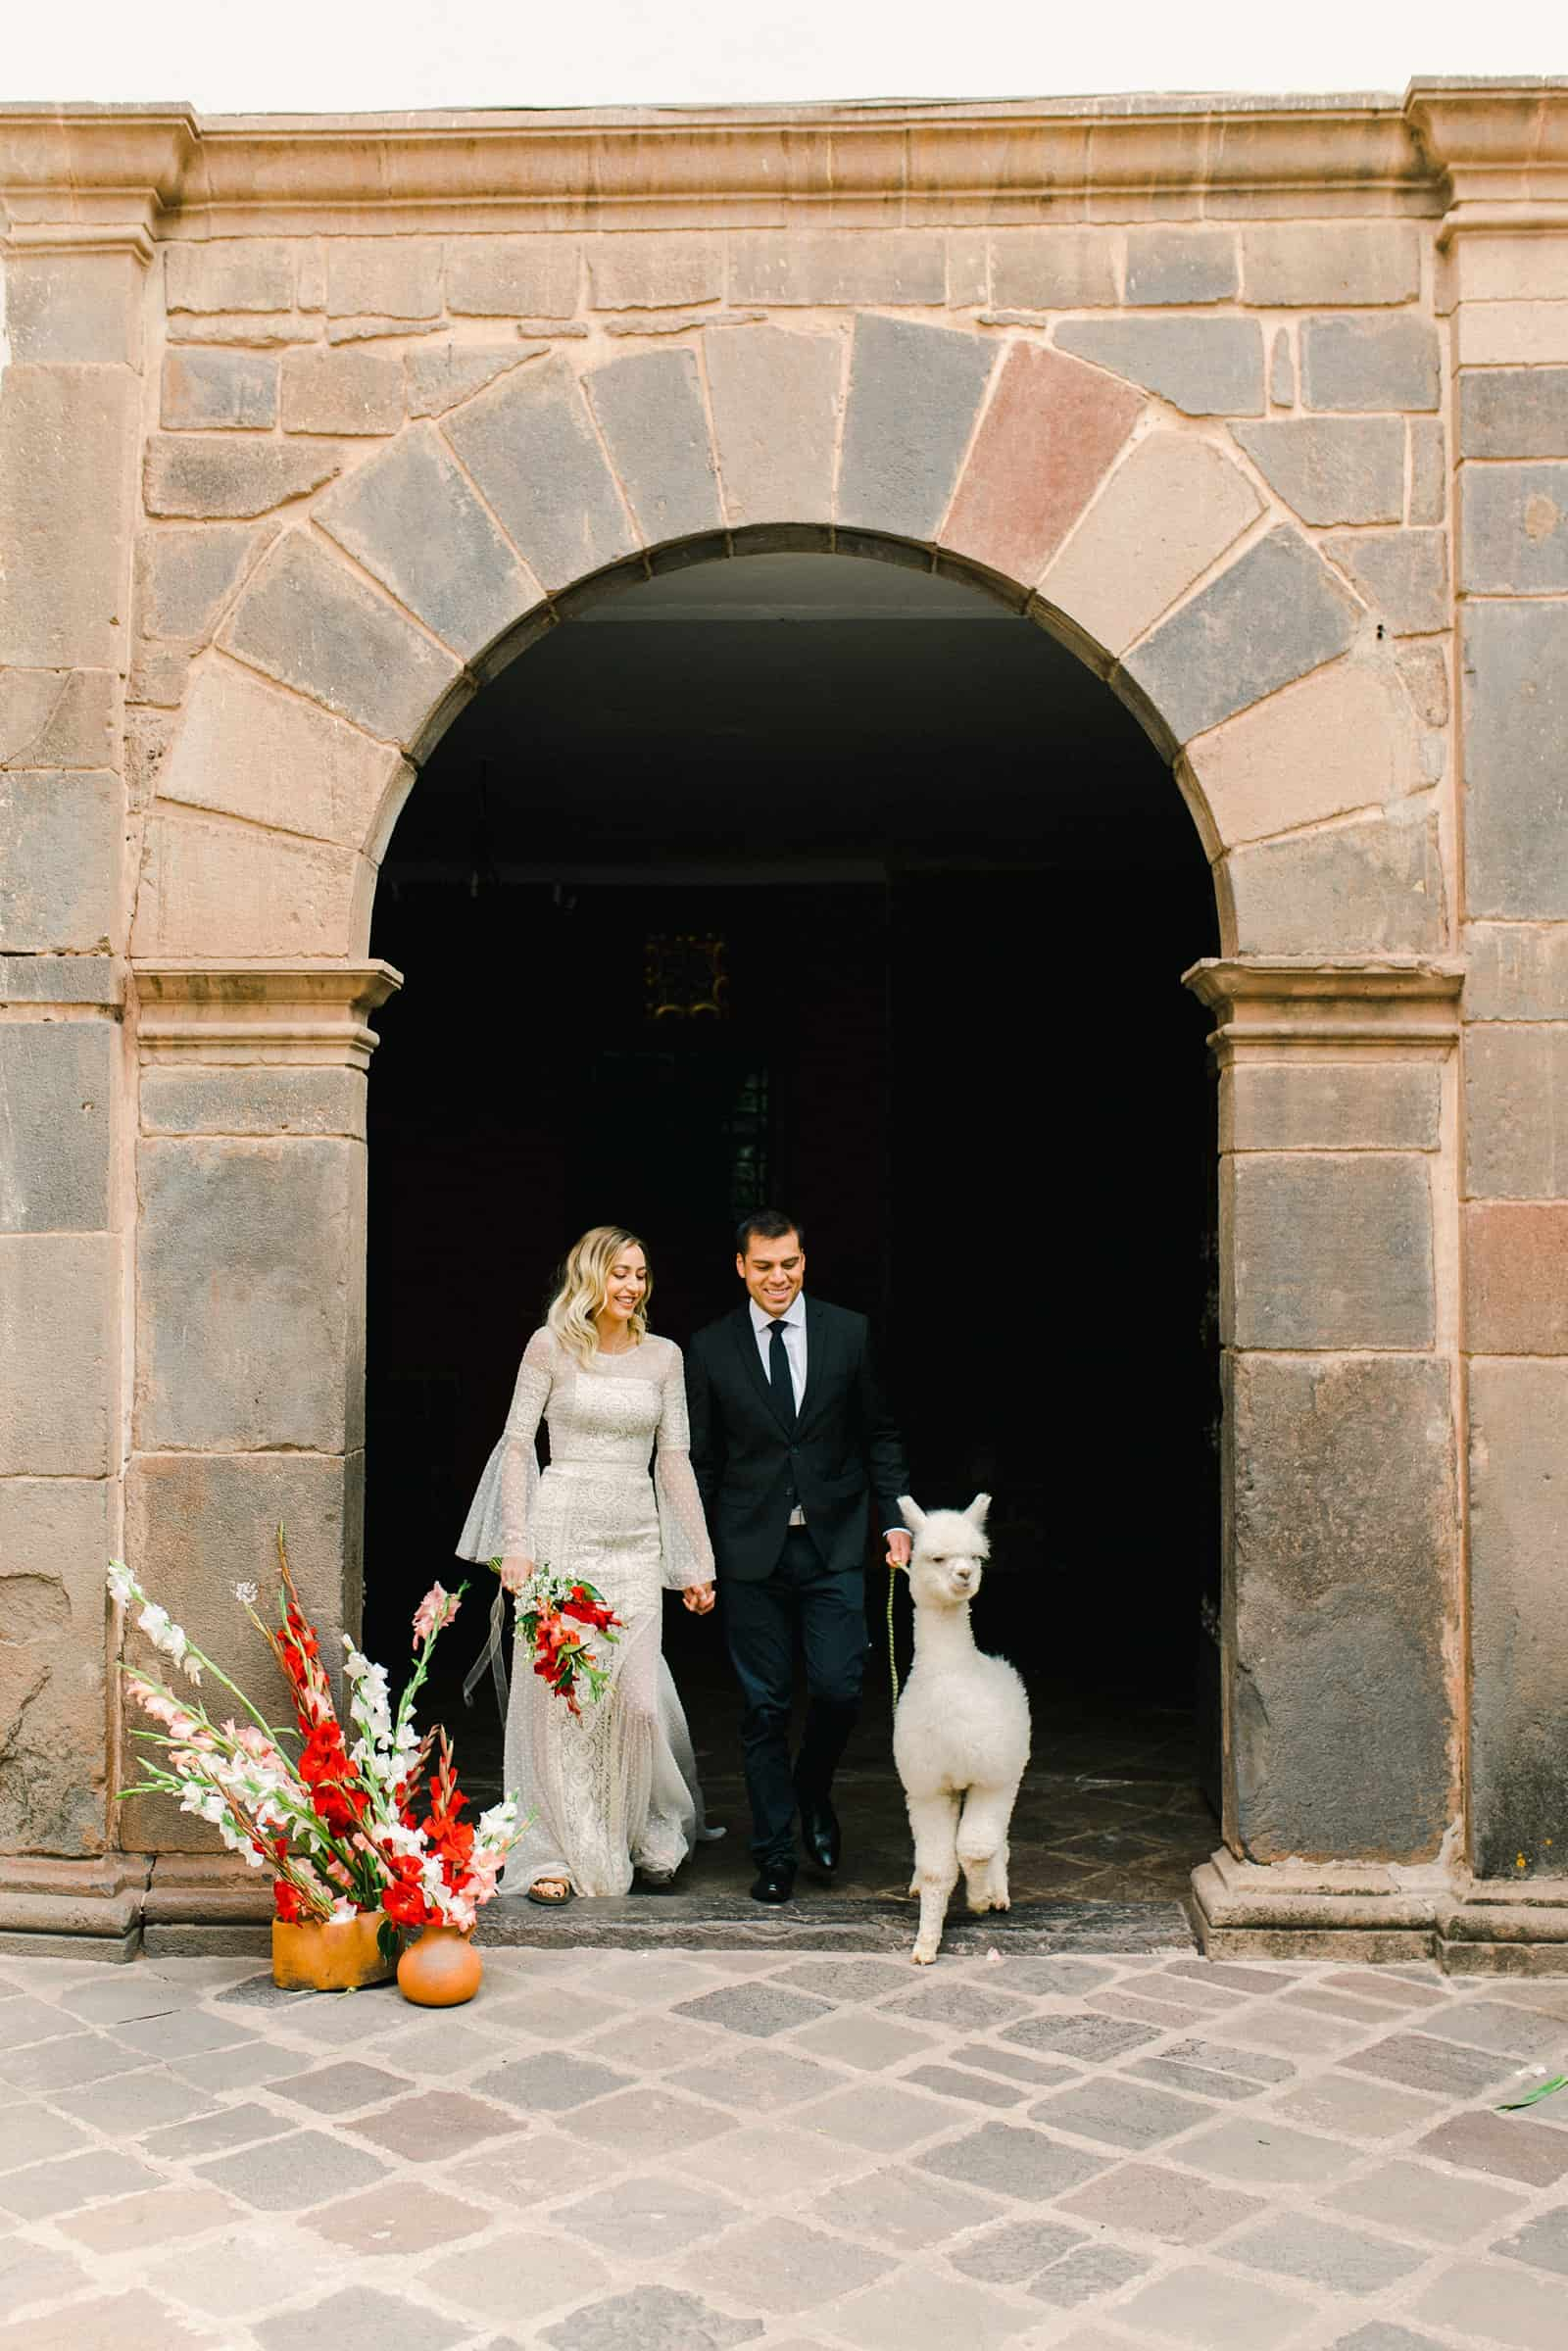 Cusco Peru Destination Wedding, travel wedding photography, Plaza de Armas red flowers boho wedding with white alpaca llama